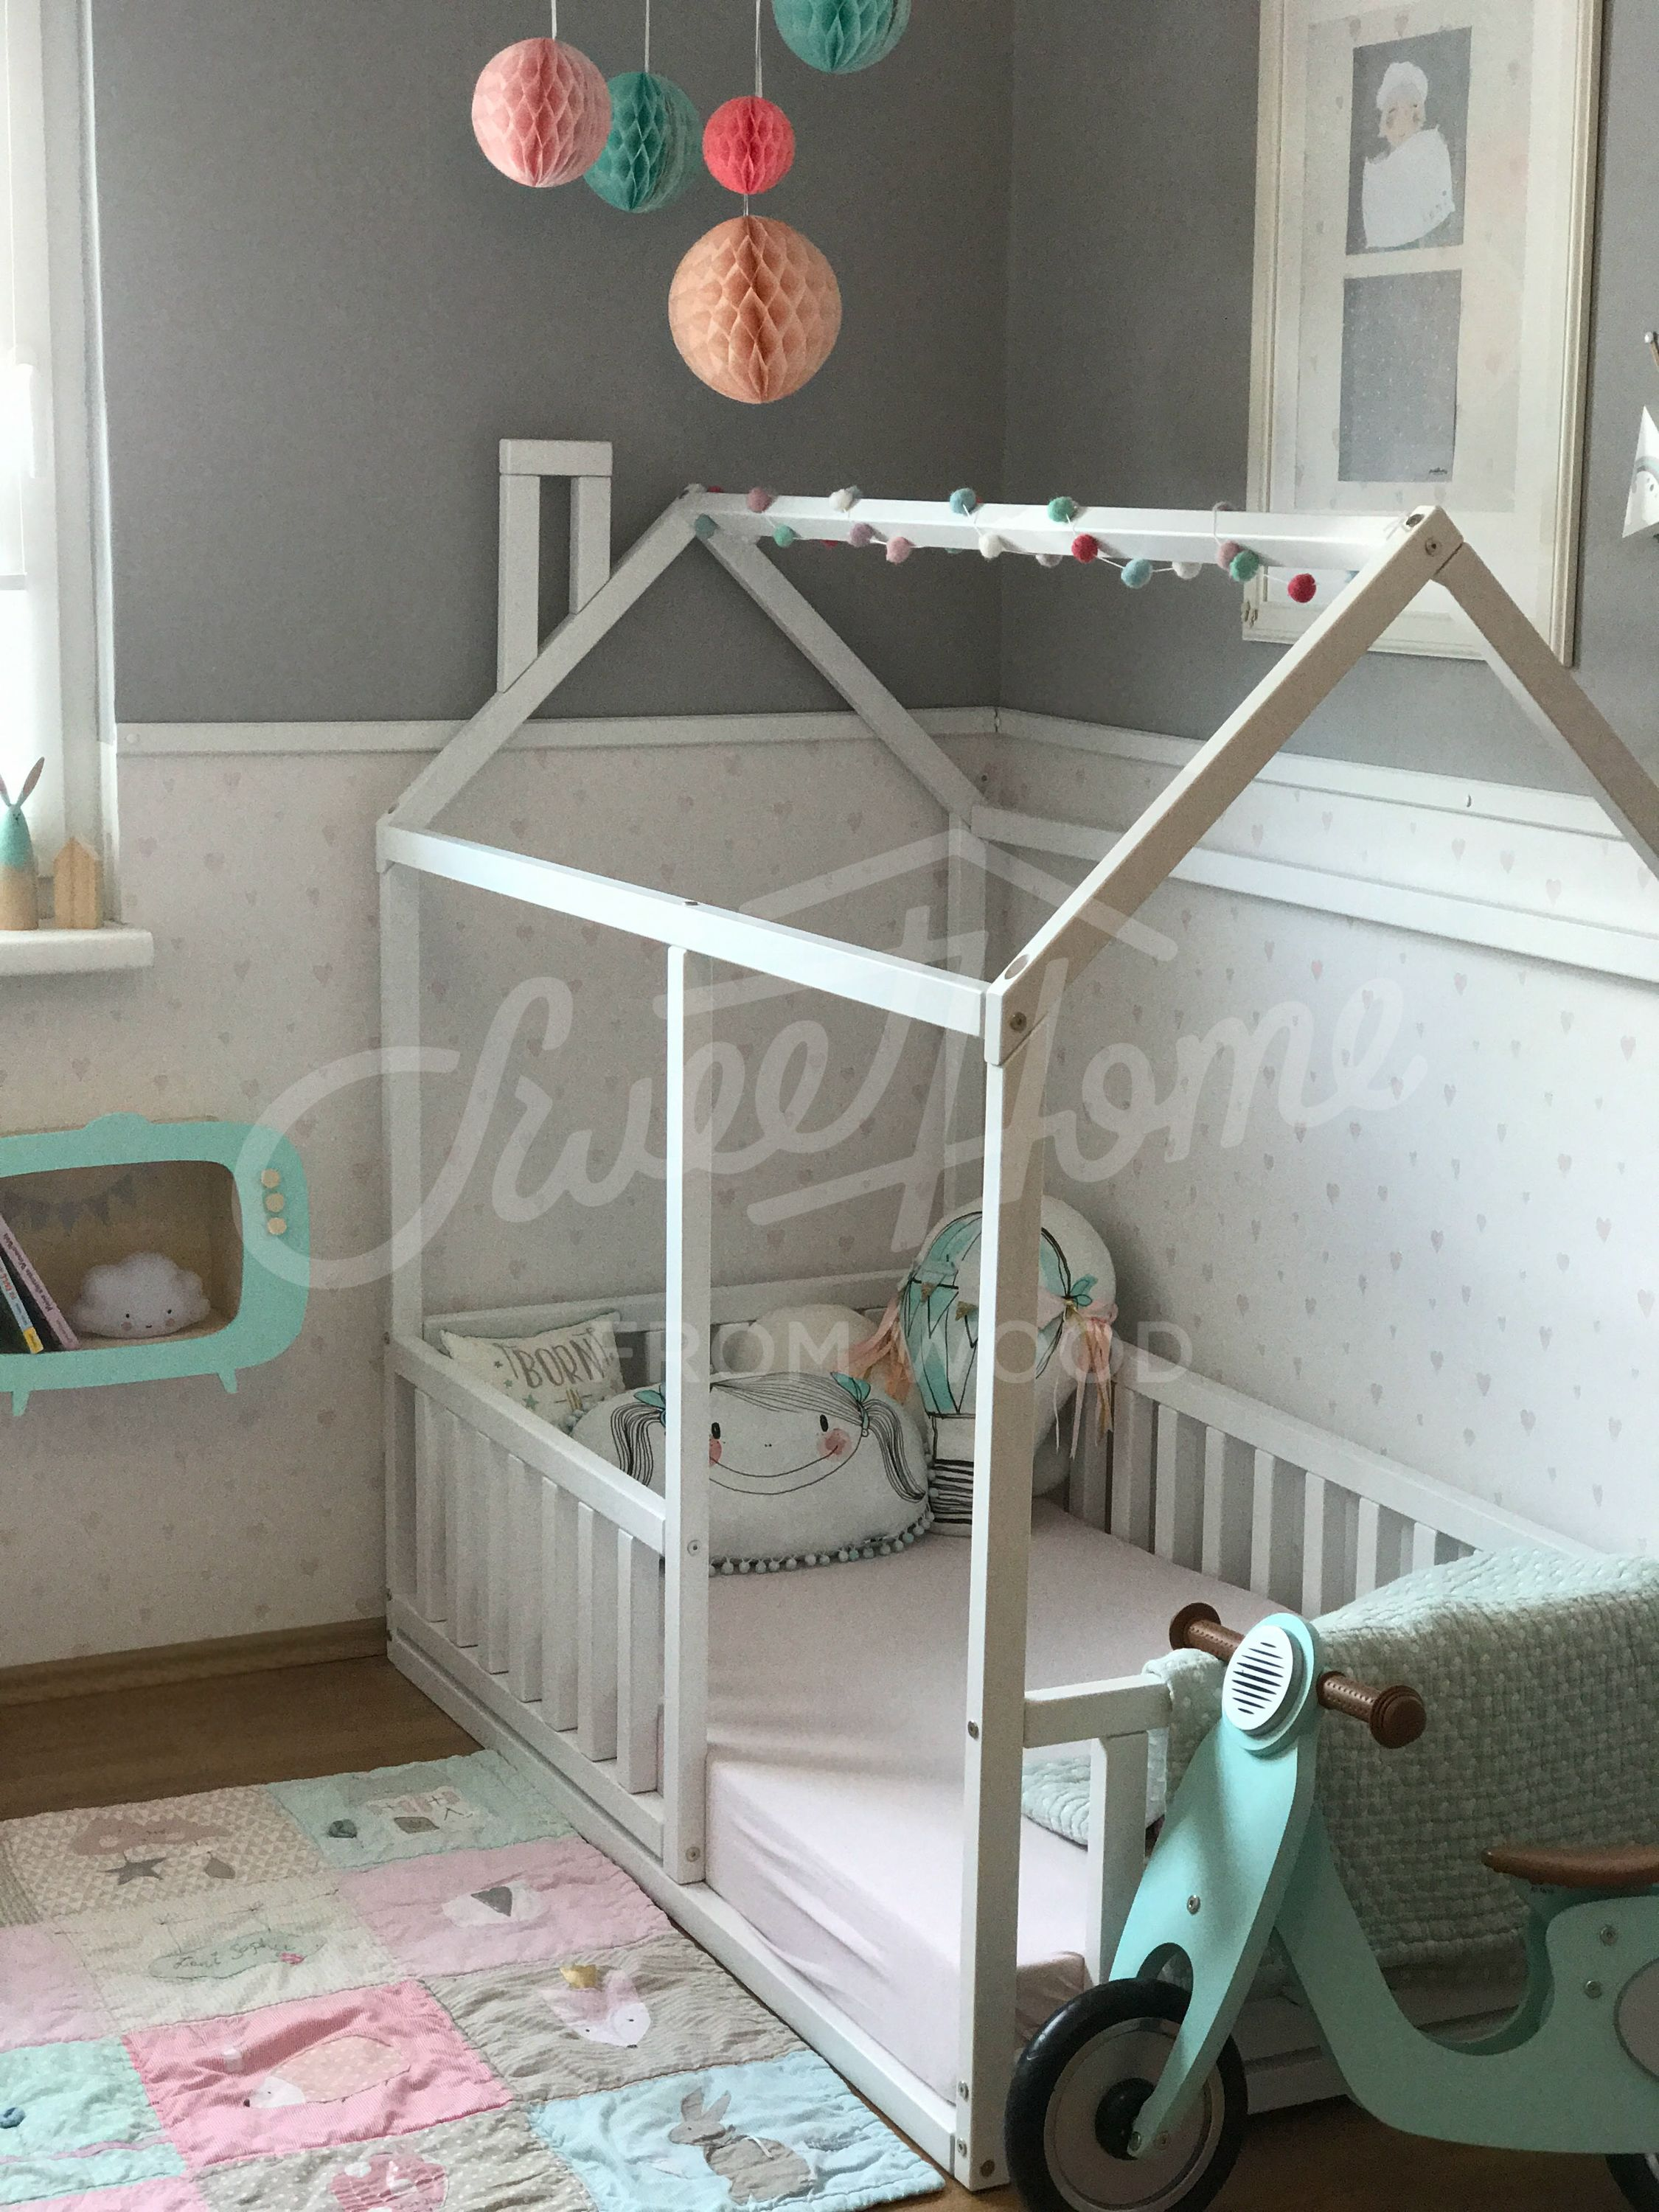 Frame bed TWIN children bed play tent house bed toddler bed floor bed baby room nursery crib home bed Pikler baby bed teepee fence SLATS : infant tent bed - memphite.com